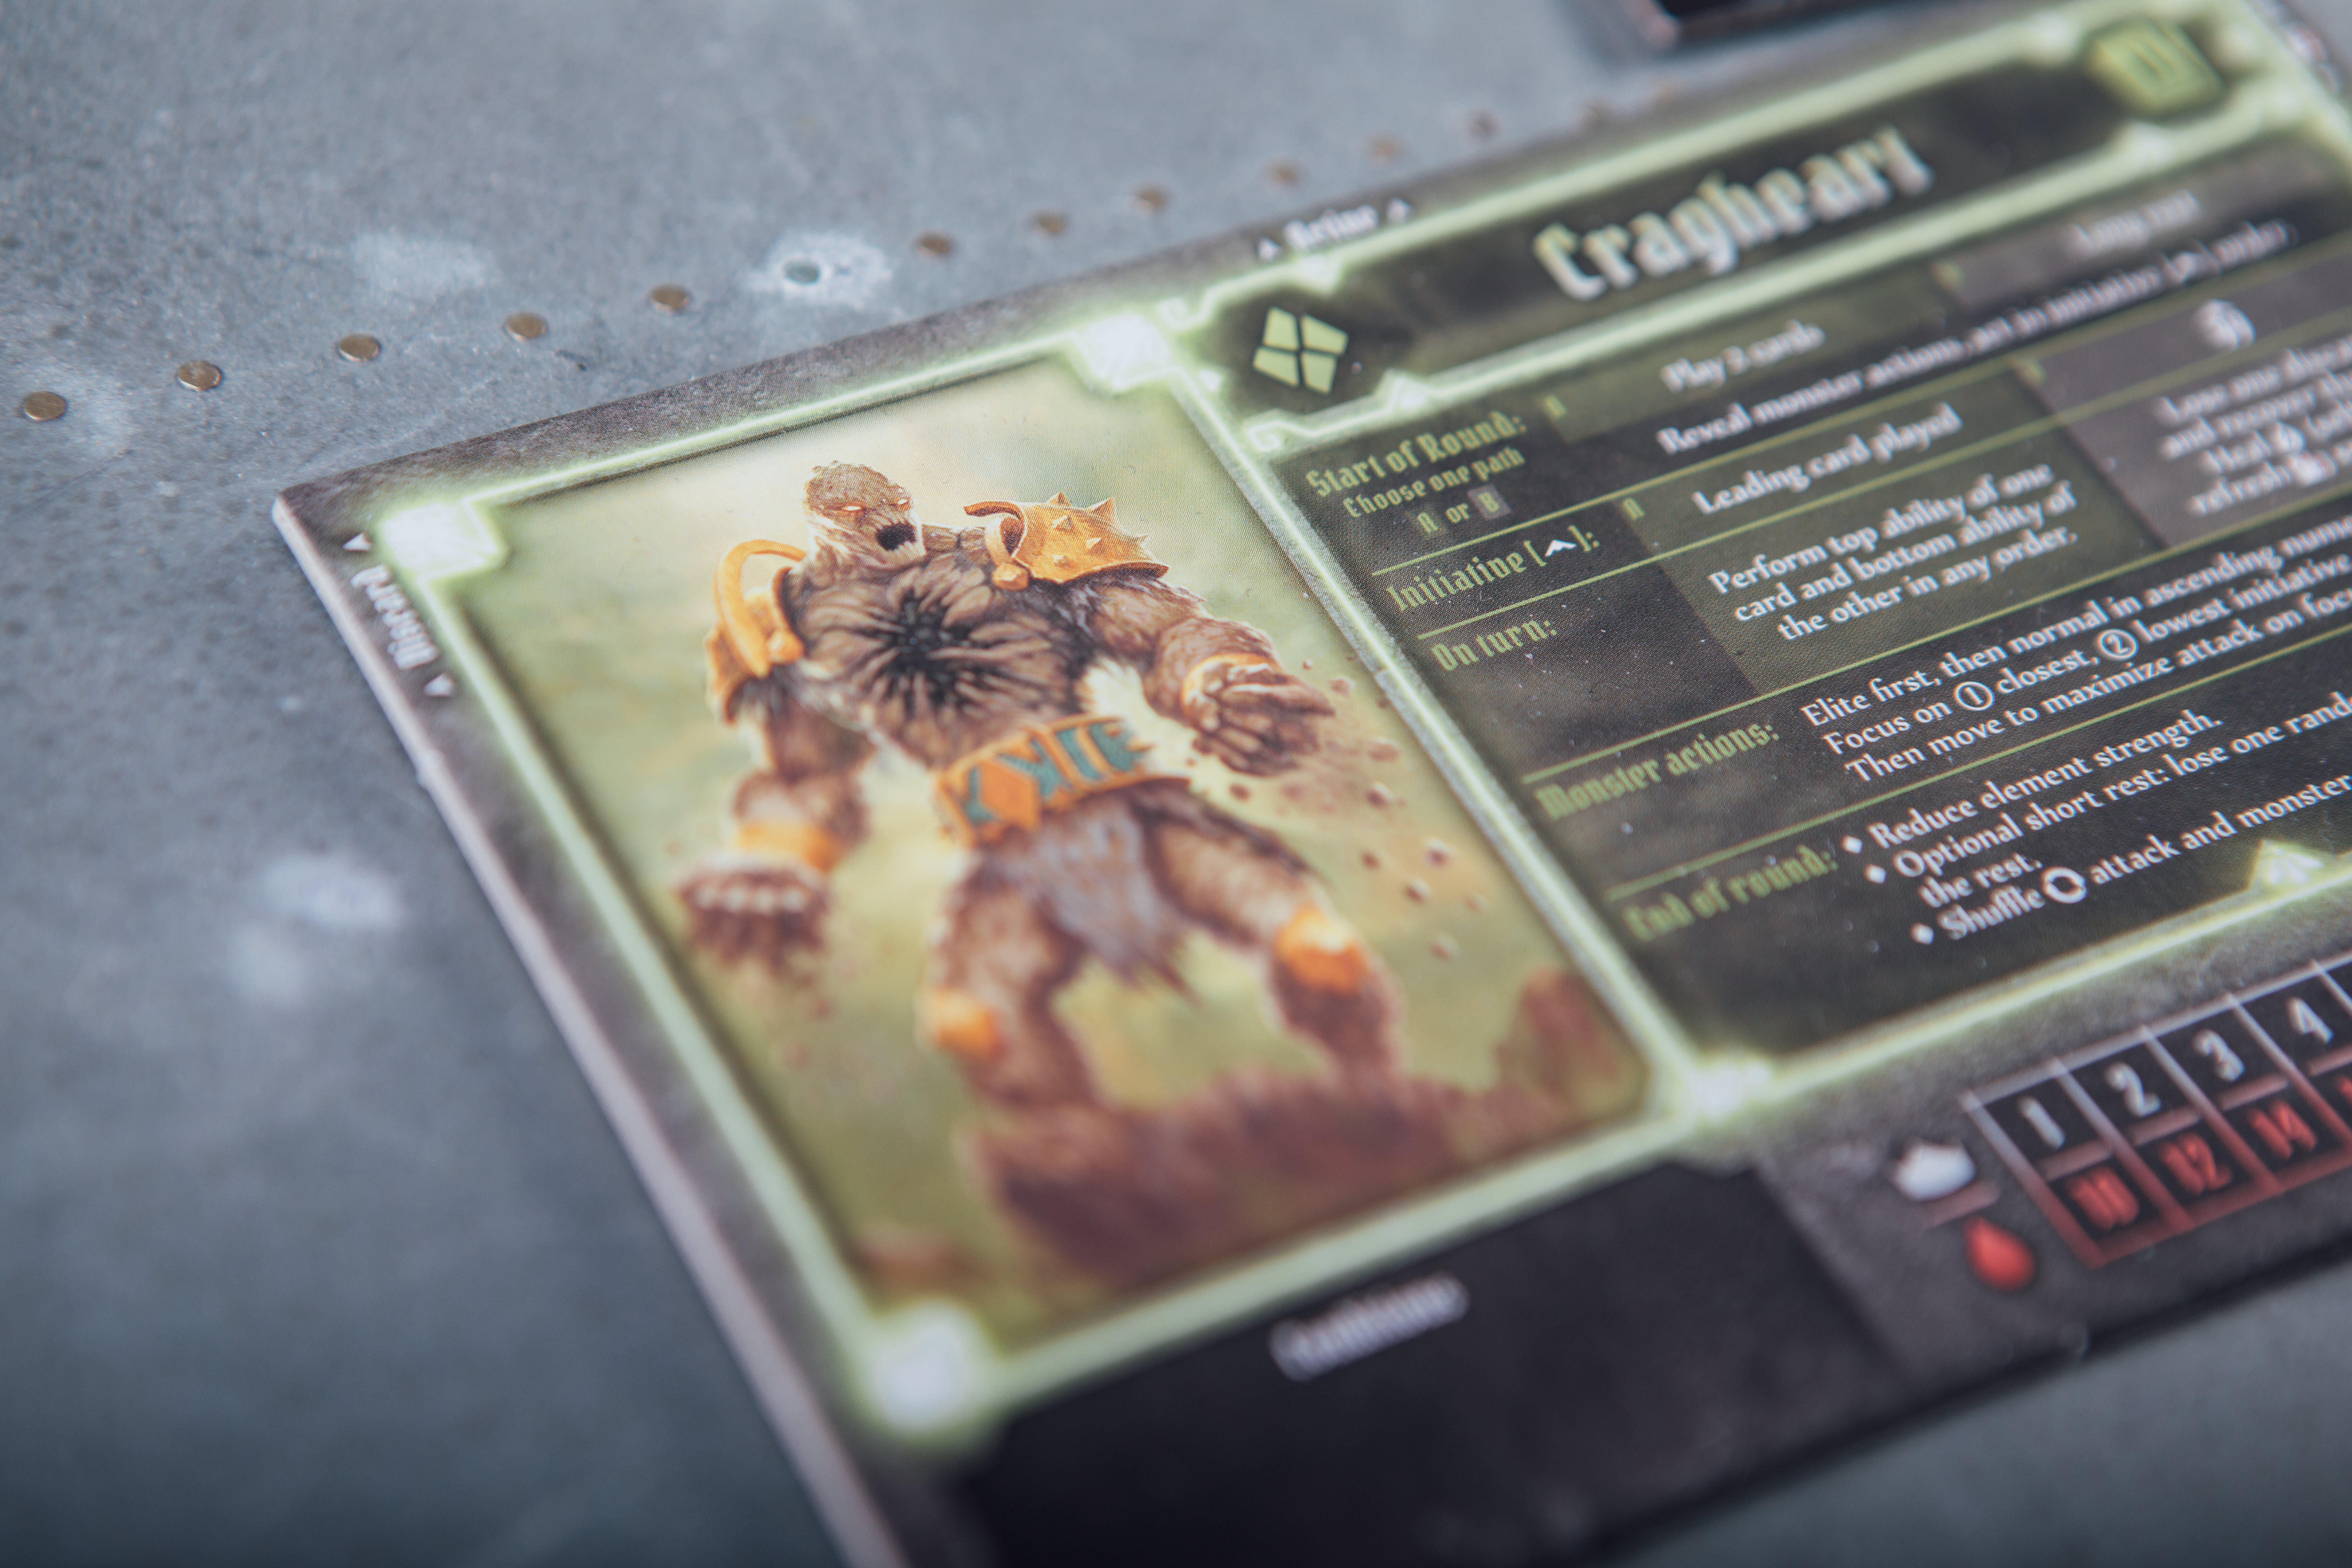 Gloomhaven Crypt of the damned Cragheart card